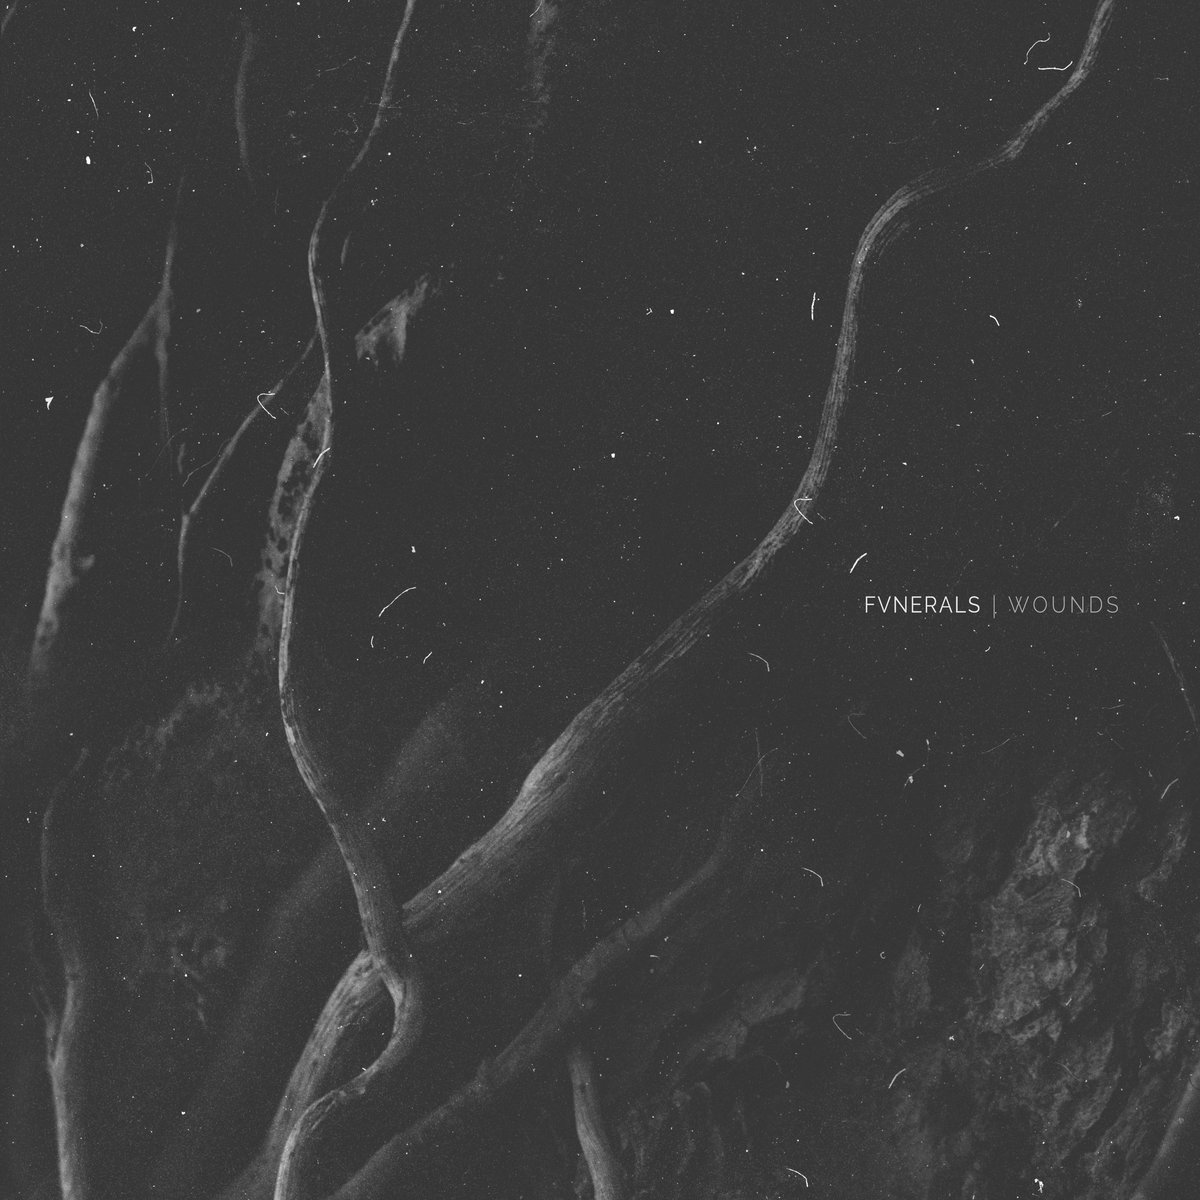 Fvnerals – wounds – CD Review